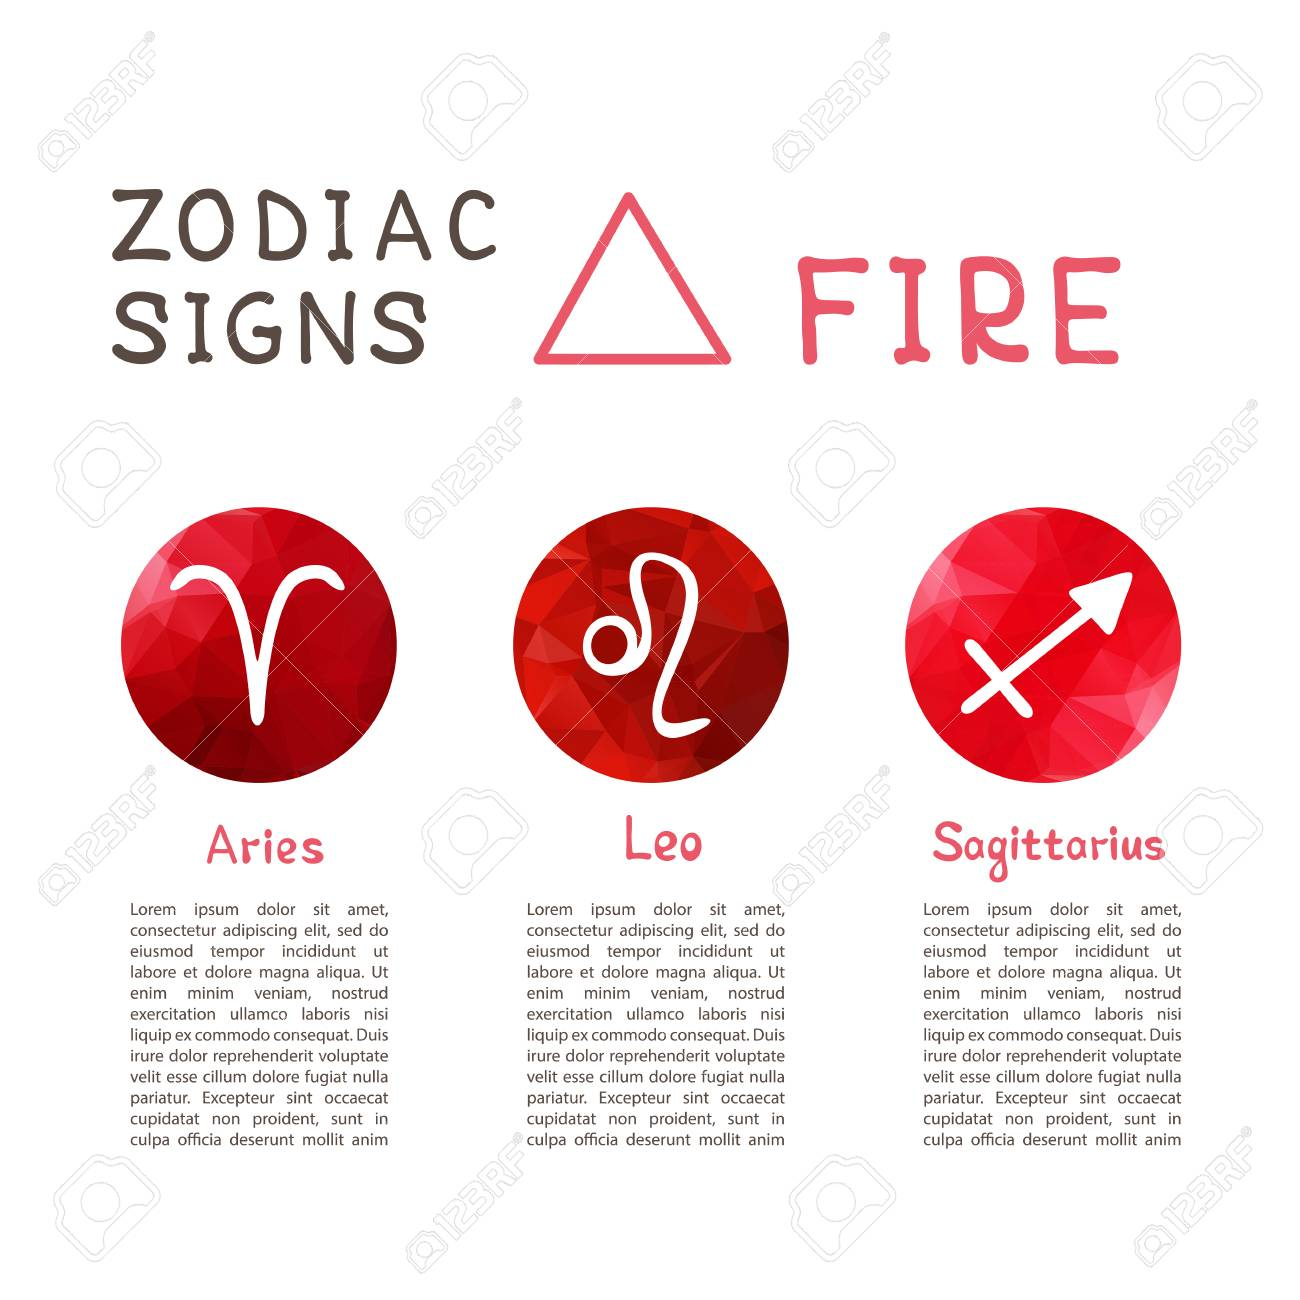 Zodiac signs according to Fire element: Aries, Leo, Sagittarius